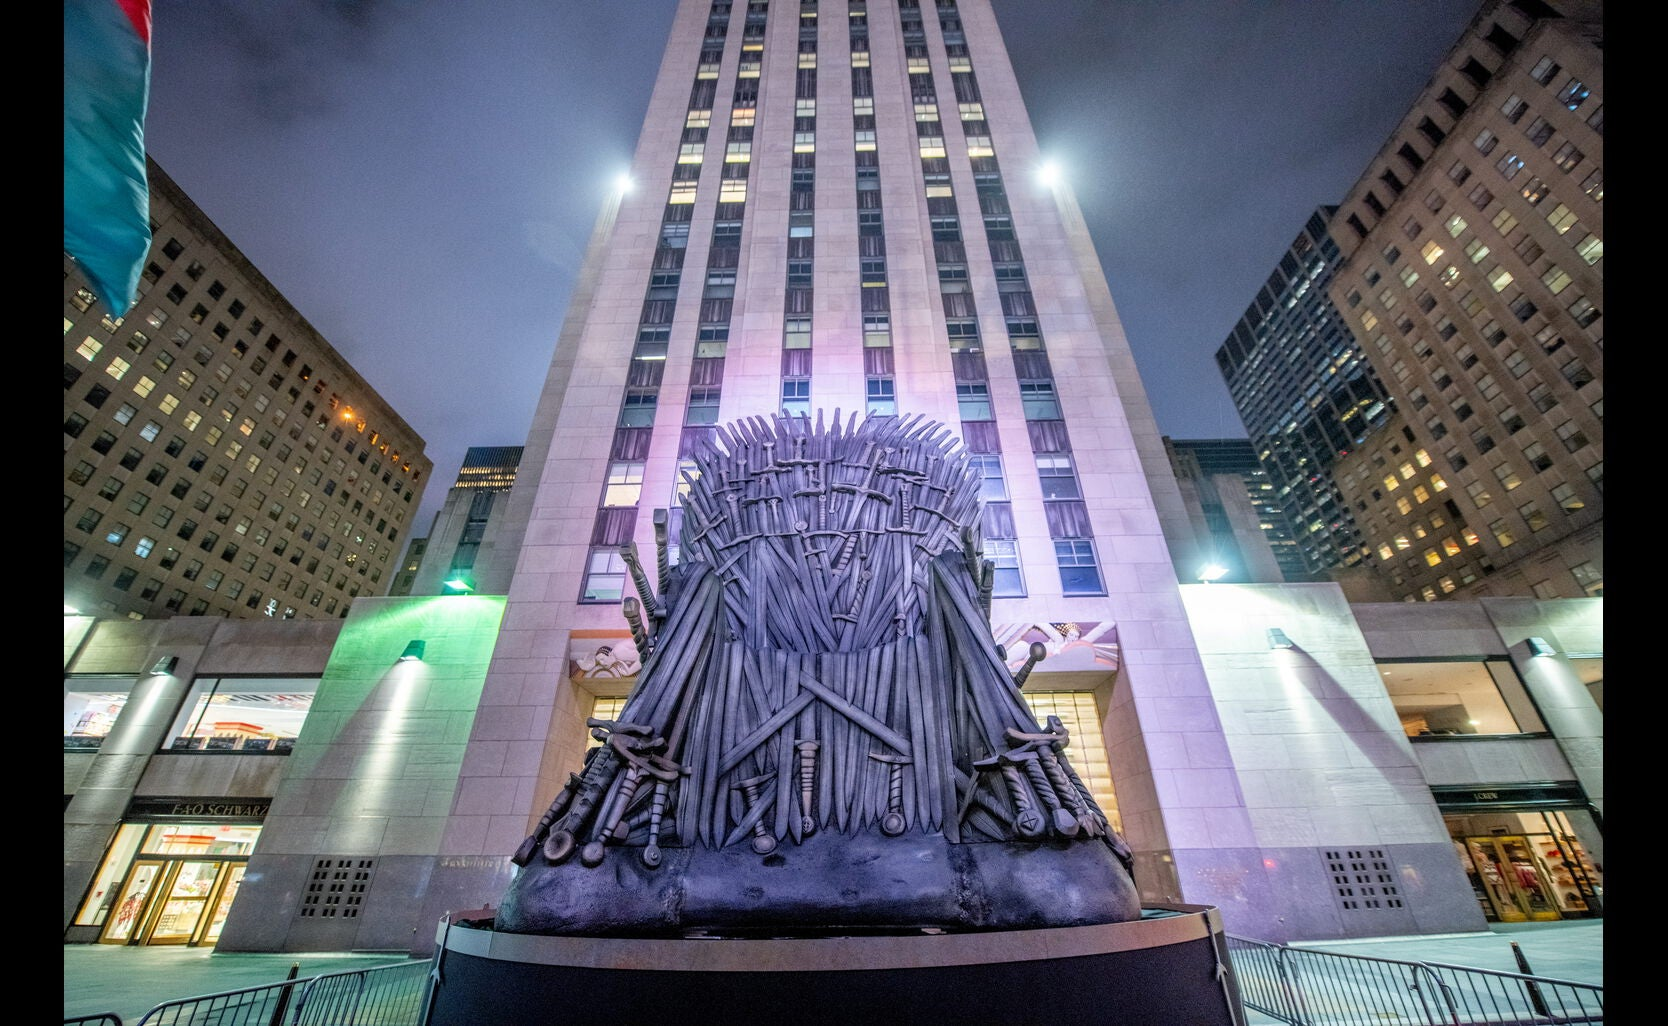 Rockfeller Center during the premiere of the final season of Game of Thrones, april 2019